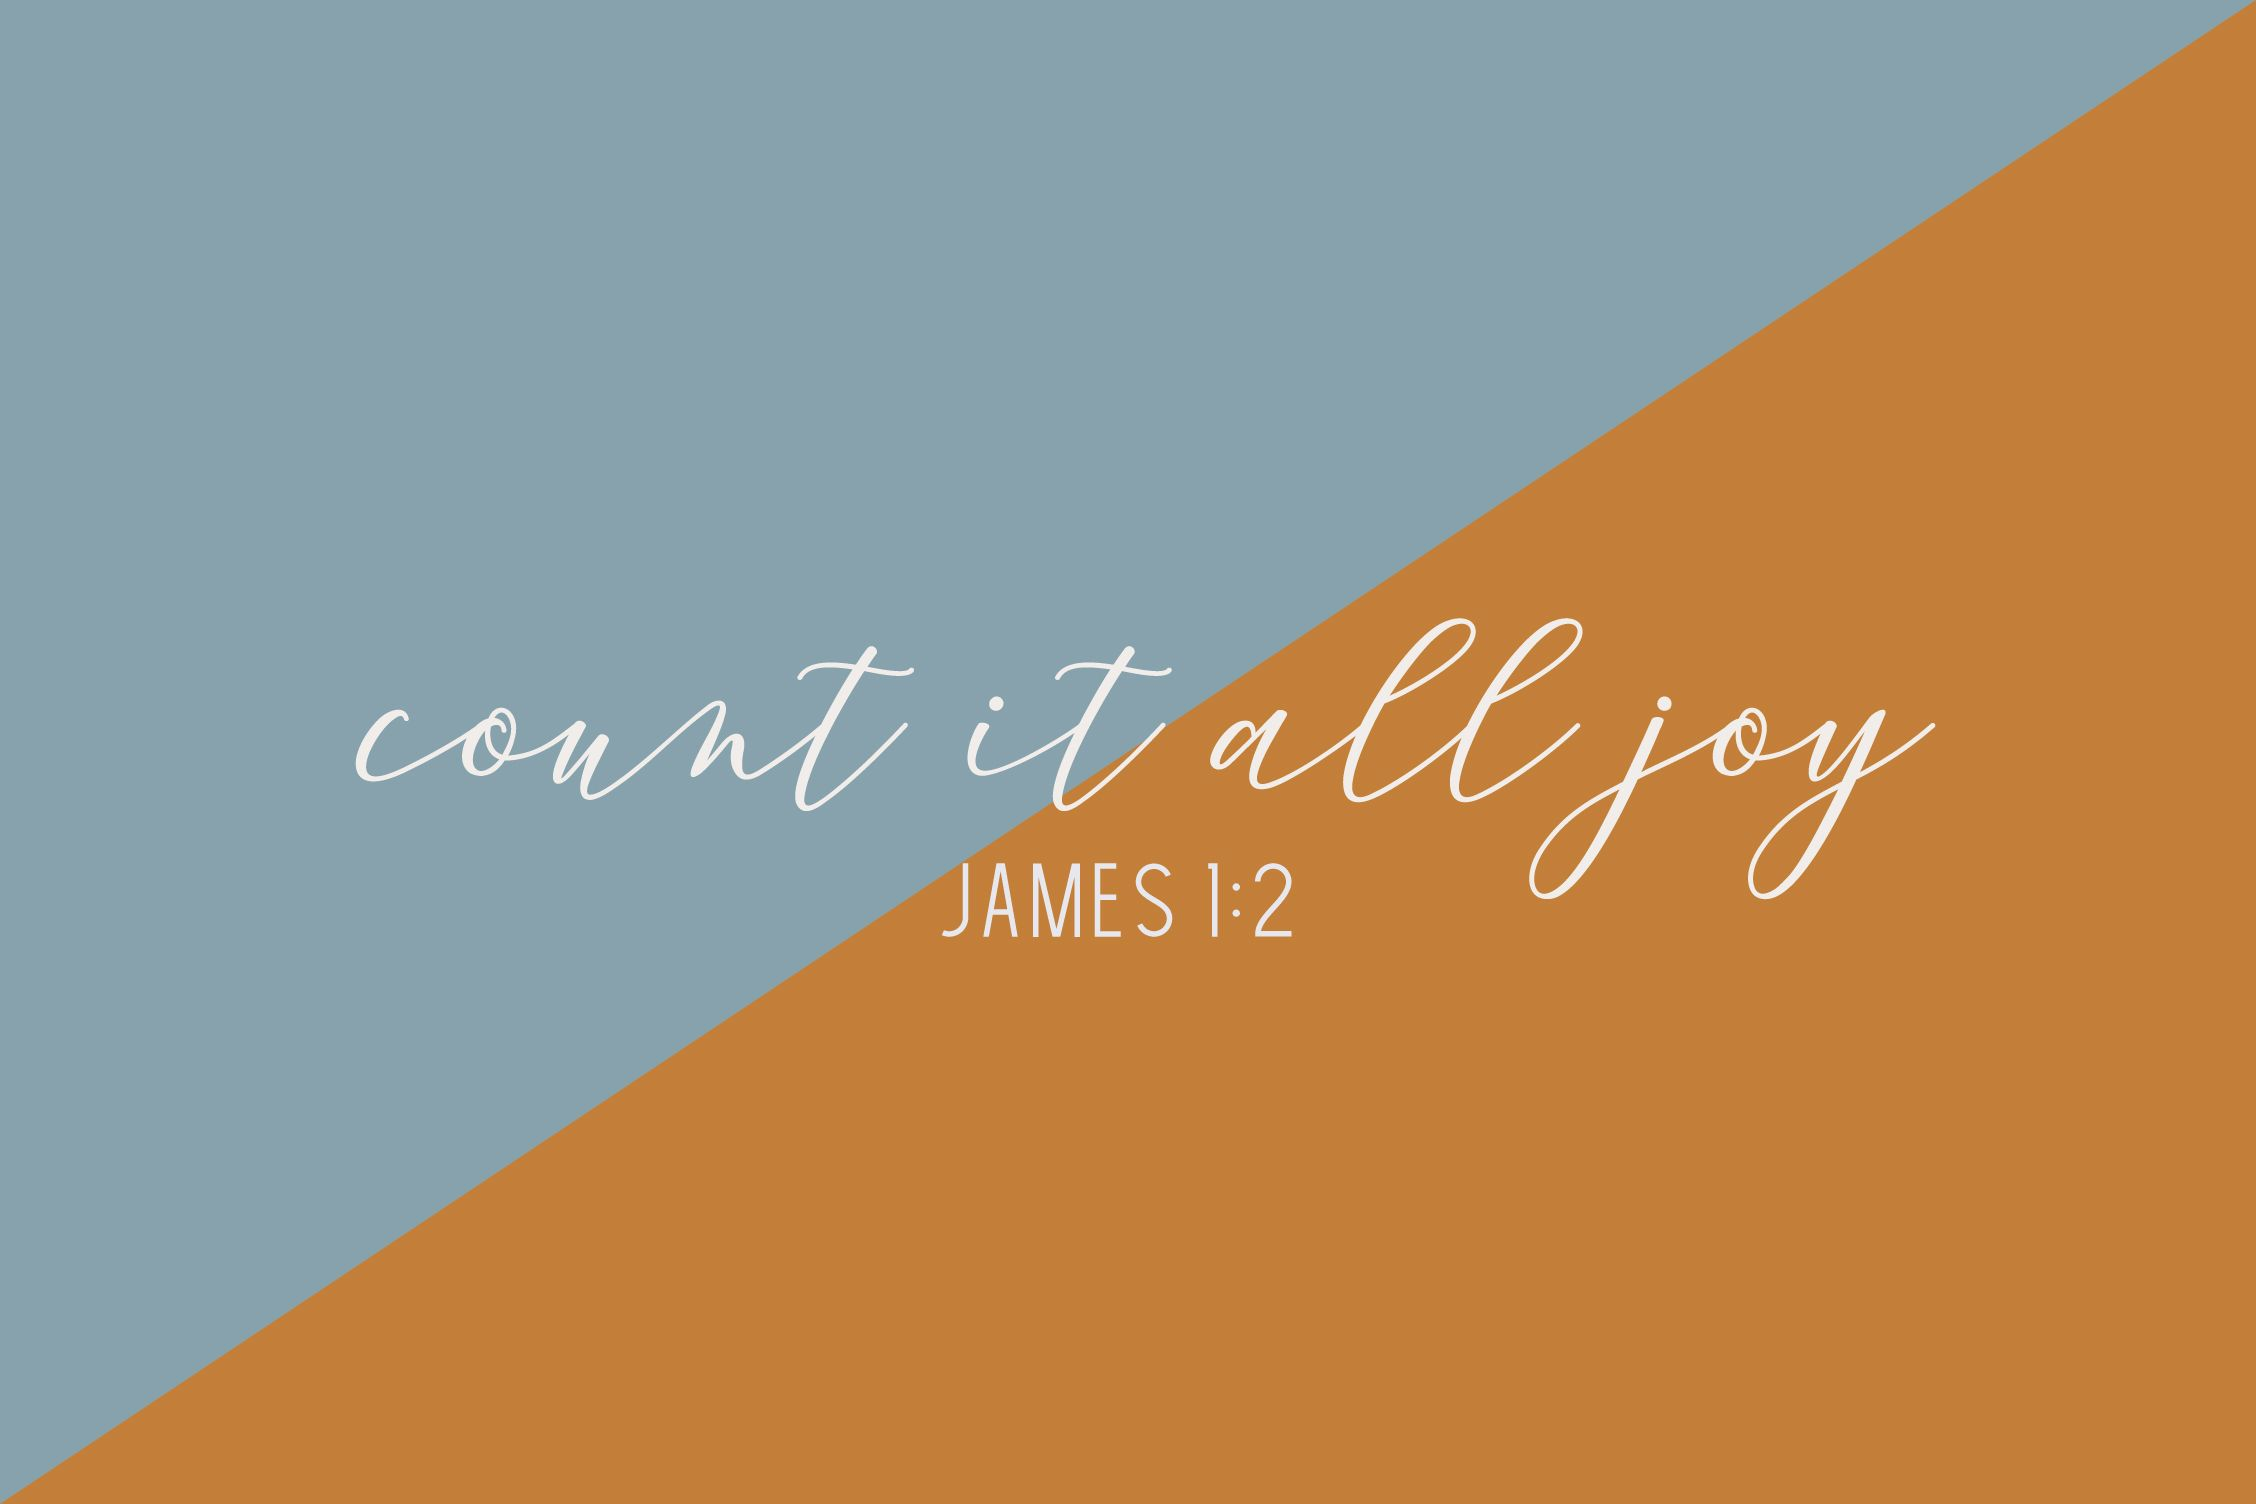 Count It All Joy Bible Verse Laptop Wallpaper Bibleverse Joy Laptopwallpaper Aesthe Bible Verse Desktop Wallpaper Bible Verse Wallpaper Worship Wallpaper